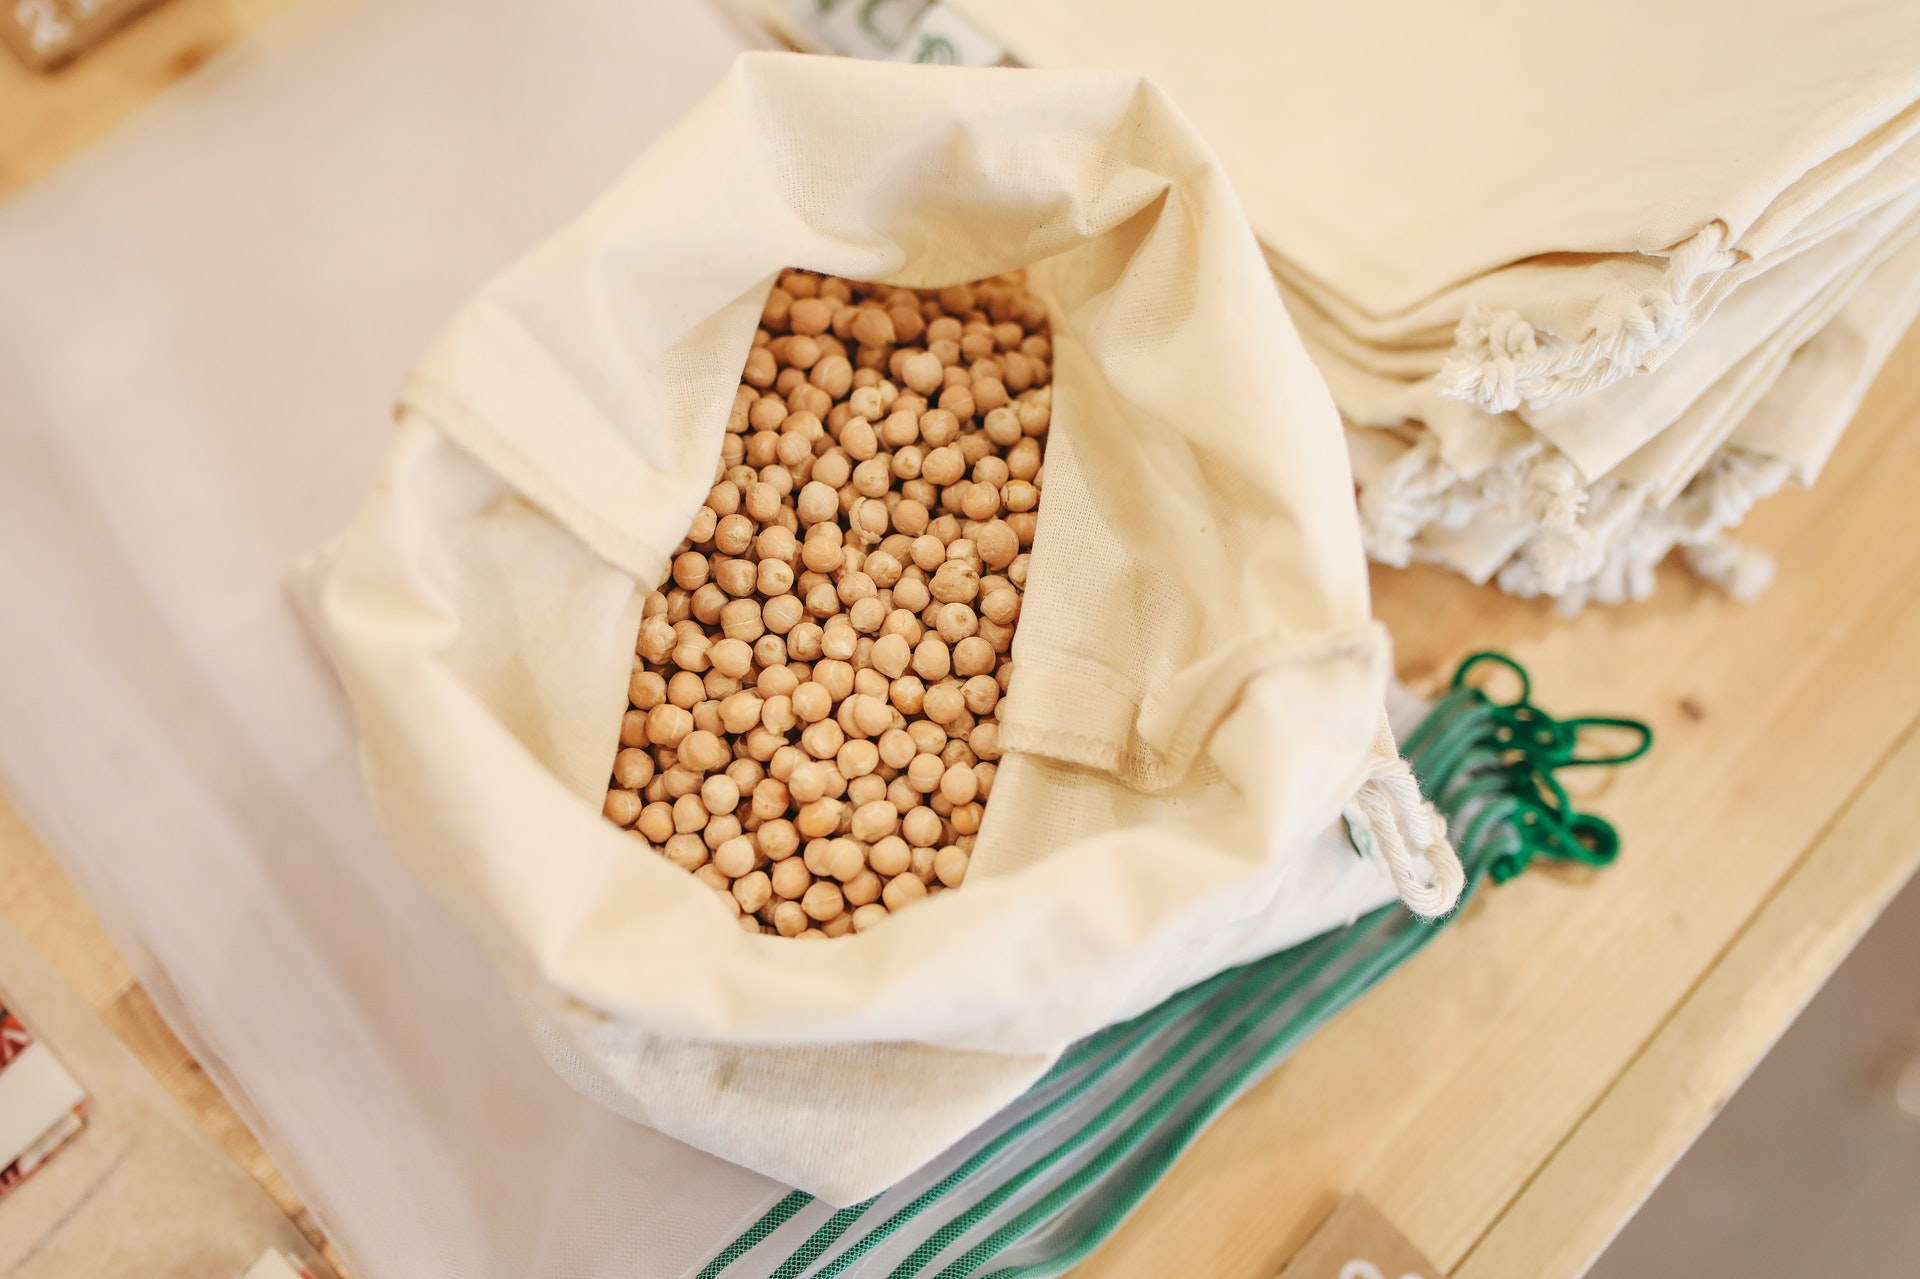 soybeans-in-sack-3735174